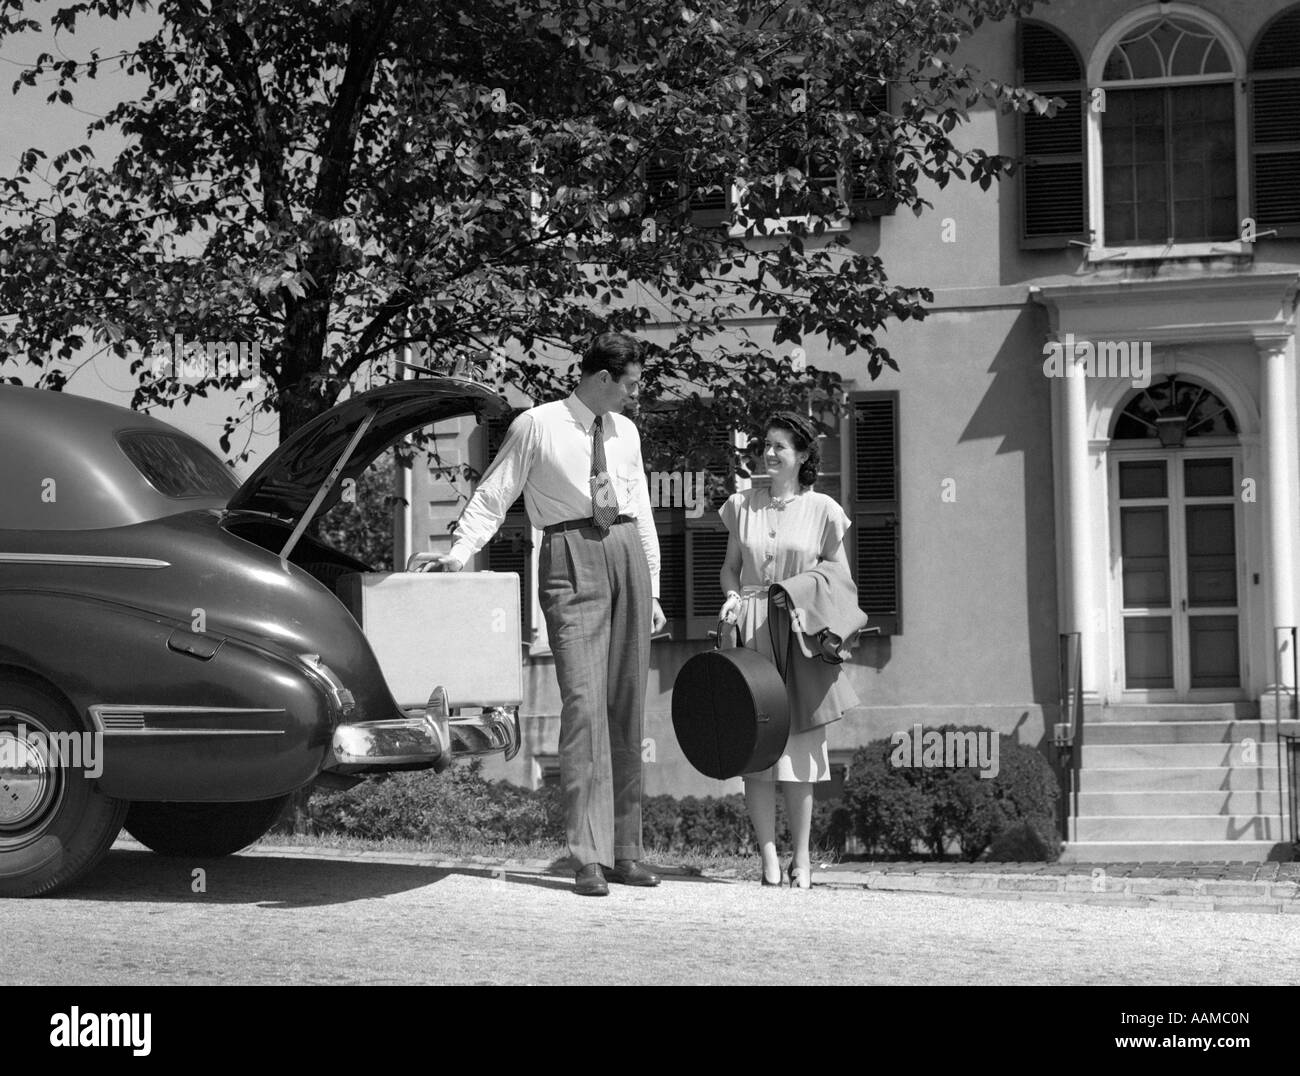 1940s MAN WOMAN LOADING TRUNK OF CAR WITH SUITCASES LUGGAGE IN FRONT OF HOUSE - Stock Image